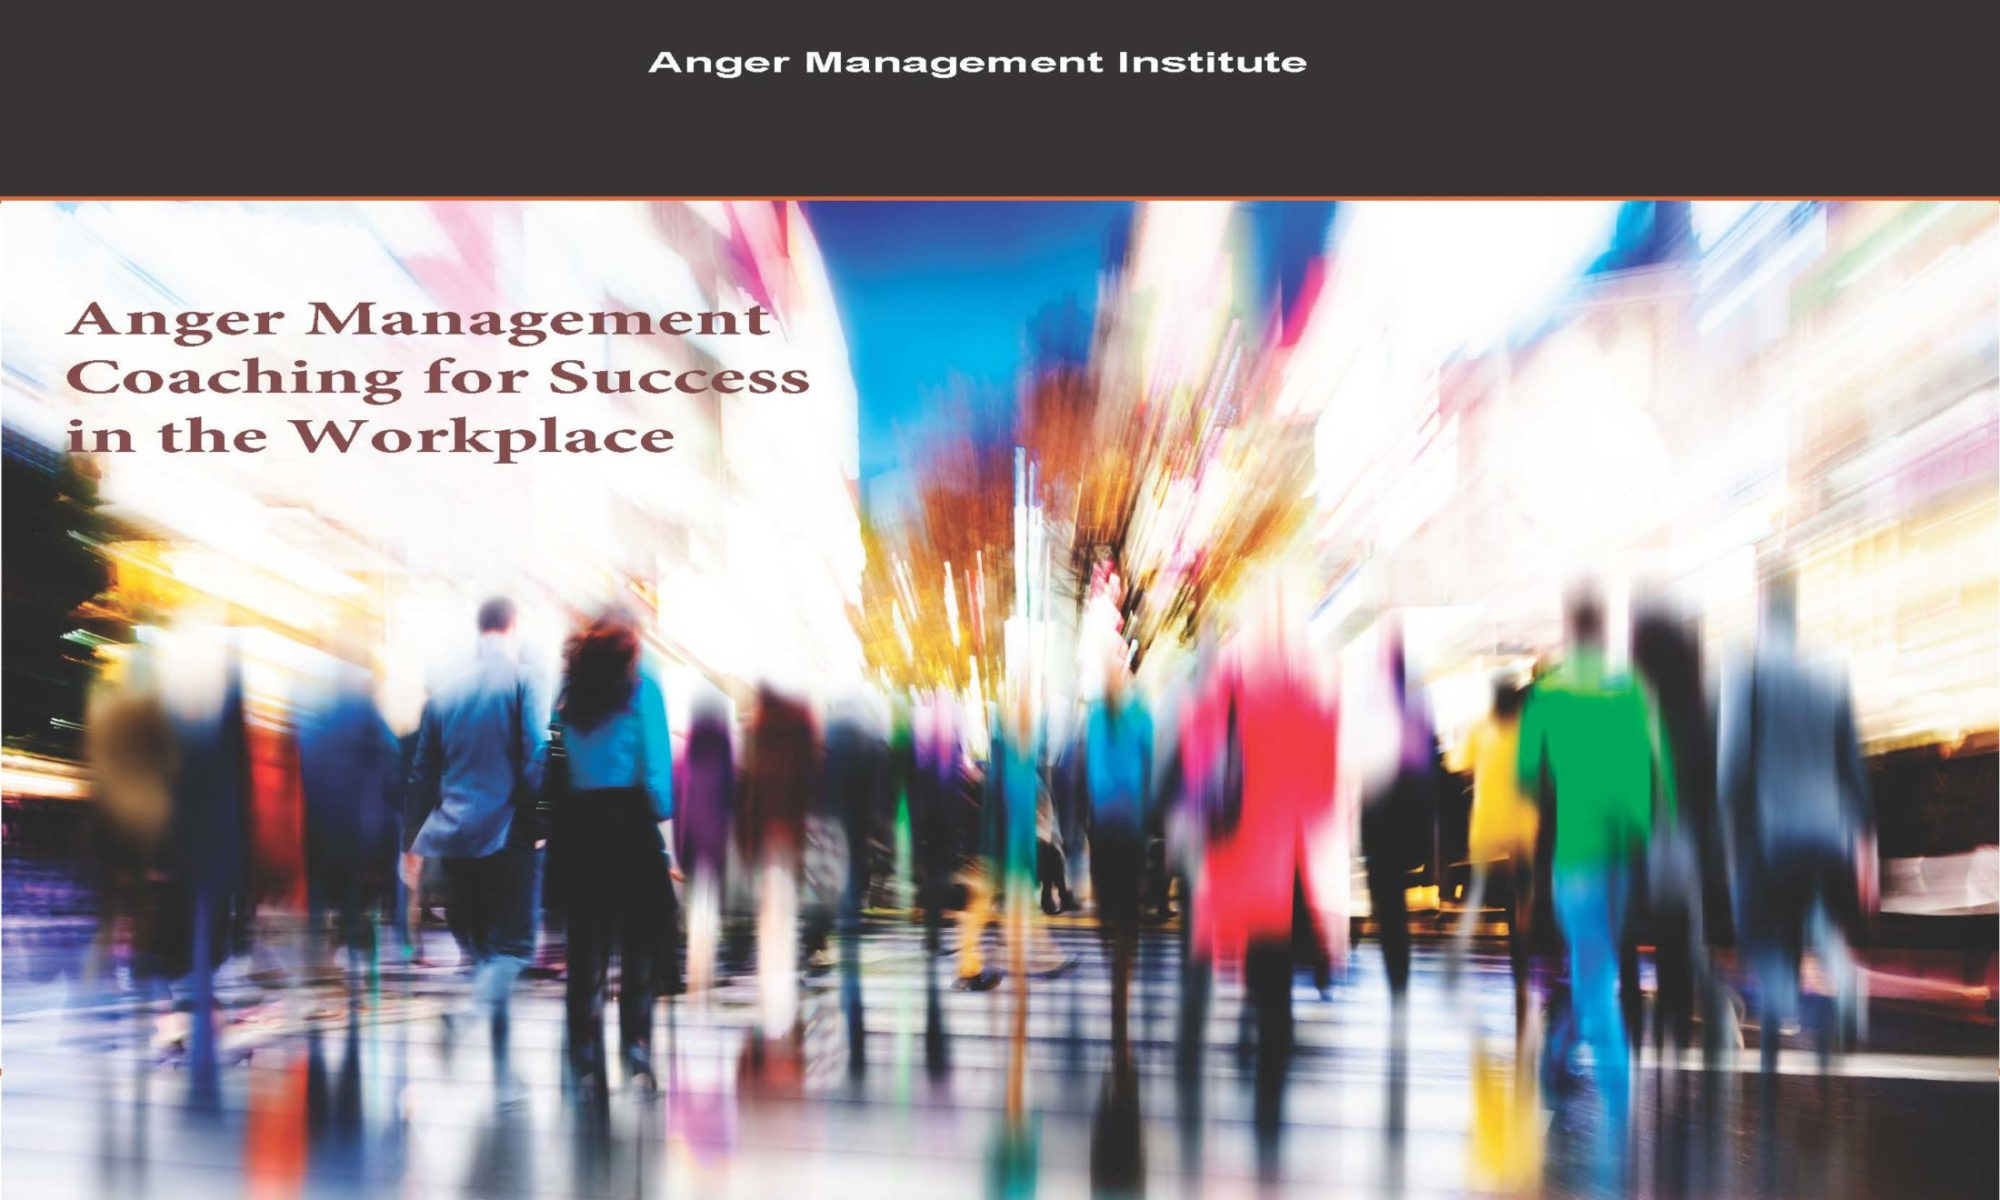 Anger Management Institute Coaching